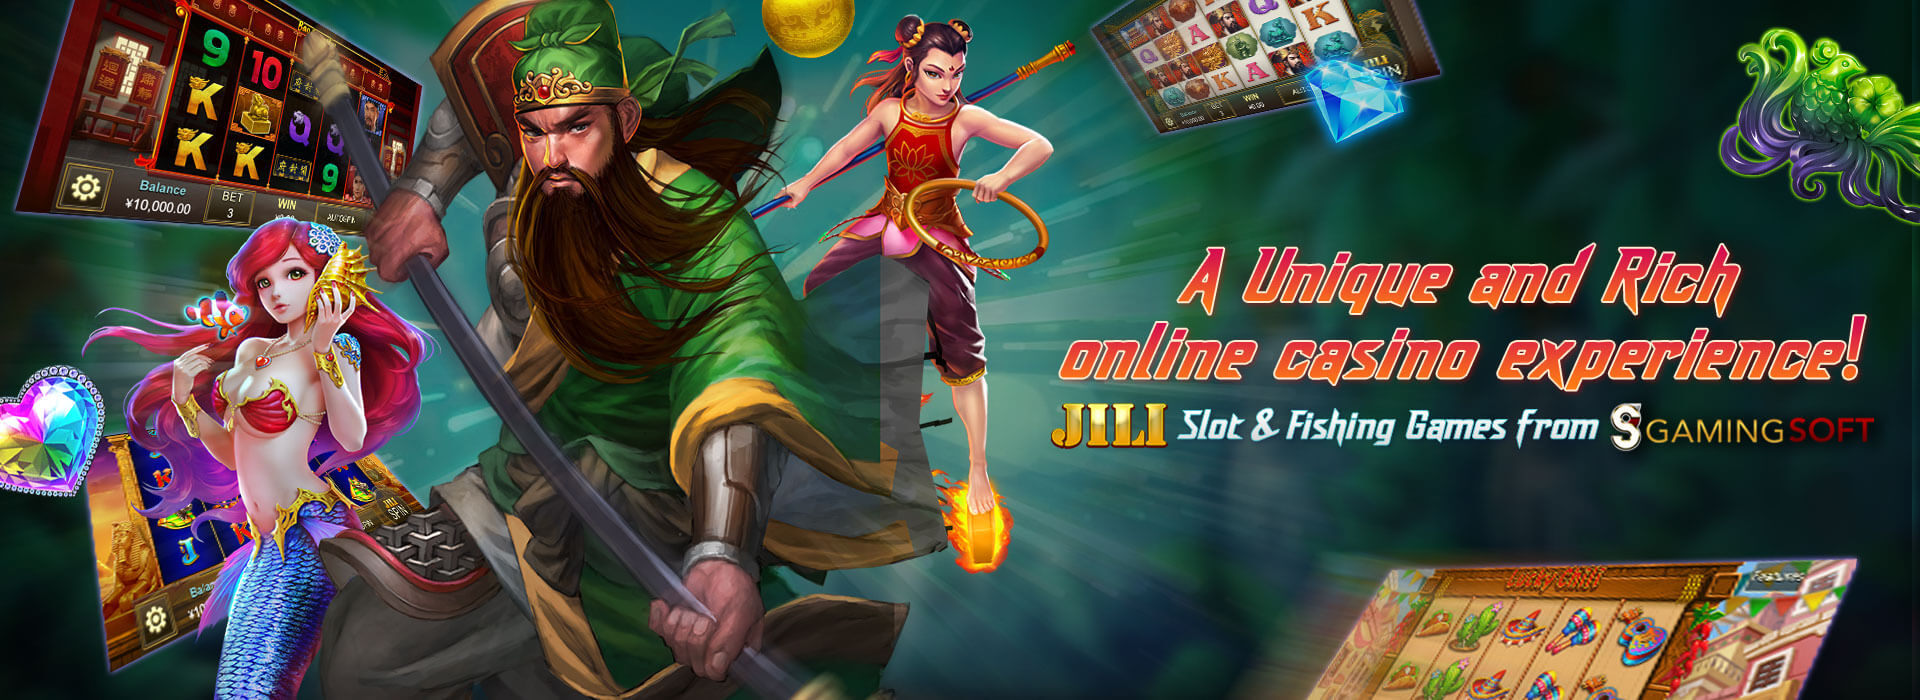 You can now Explore the Online Casino Software and Tailors its Software Engine to Suit your Platform from our Brand New Provider Jili Under GamingSoft's Vendor Database - GamingSoft